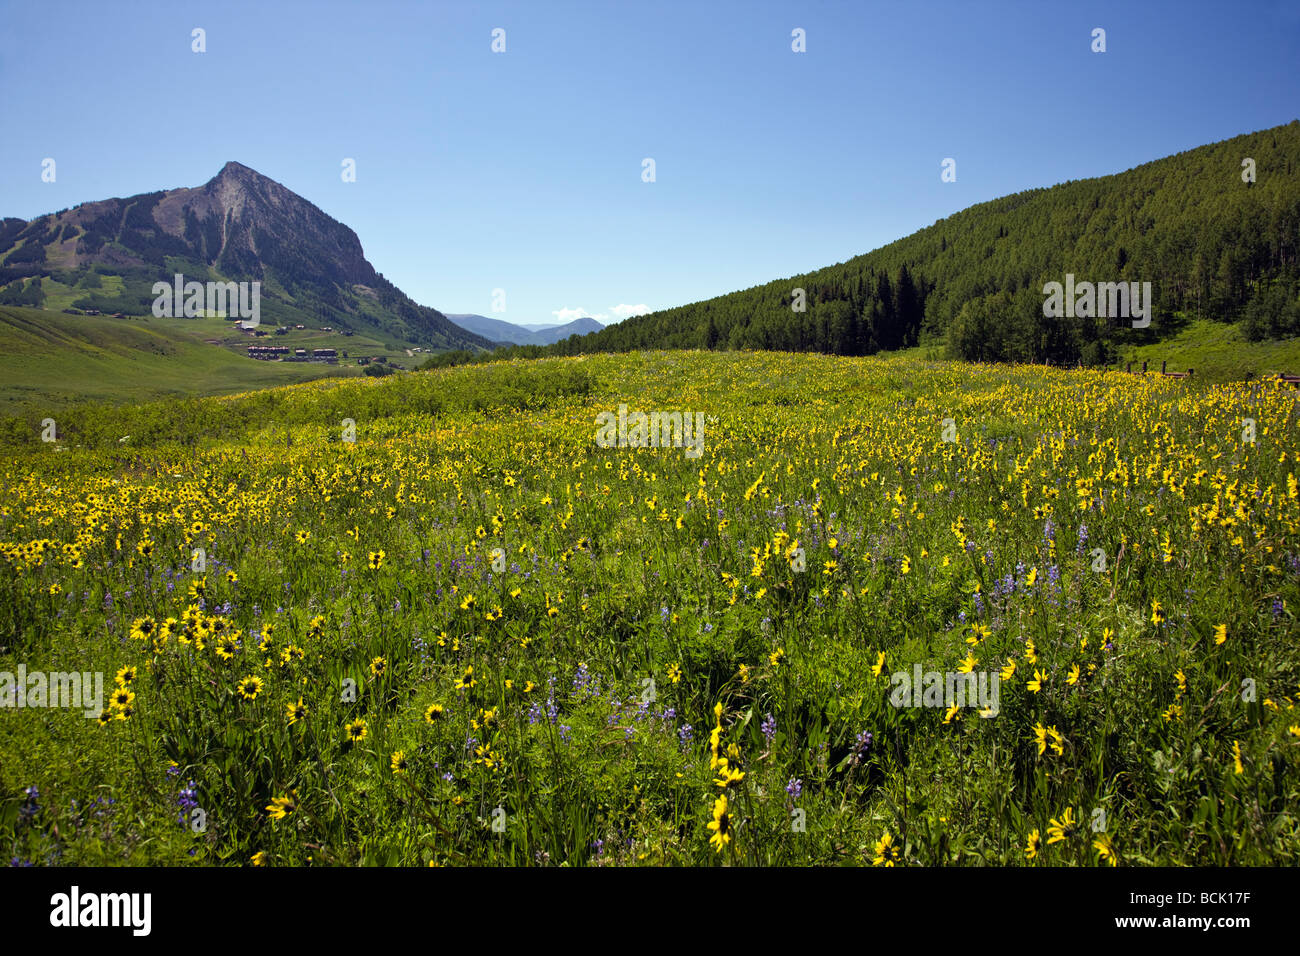 View from Snodgrass Mountain of a pasture full of wildflowers including Mule Ears & Blue Flax near Mount Crested - Stock Image